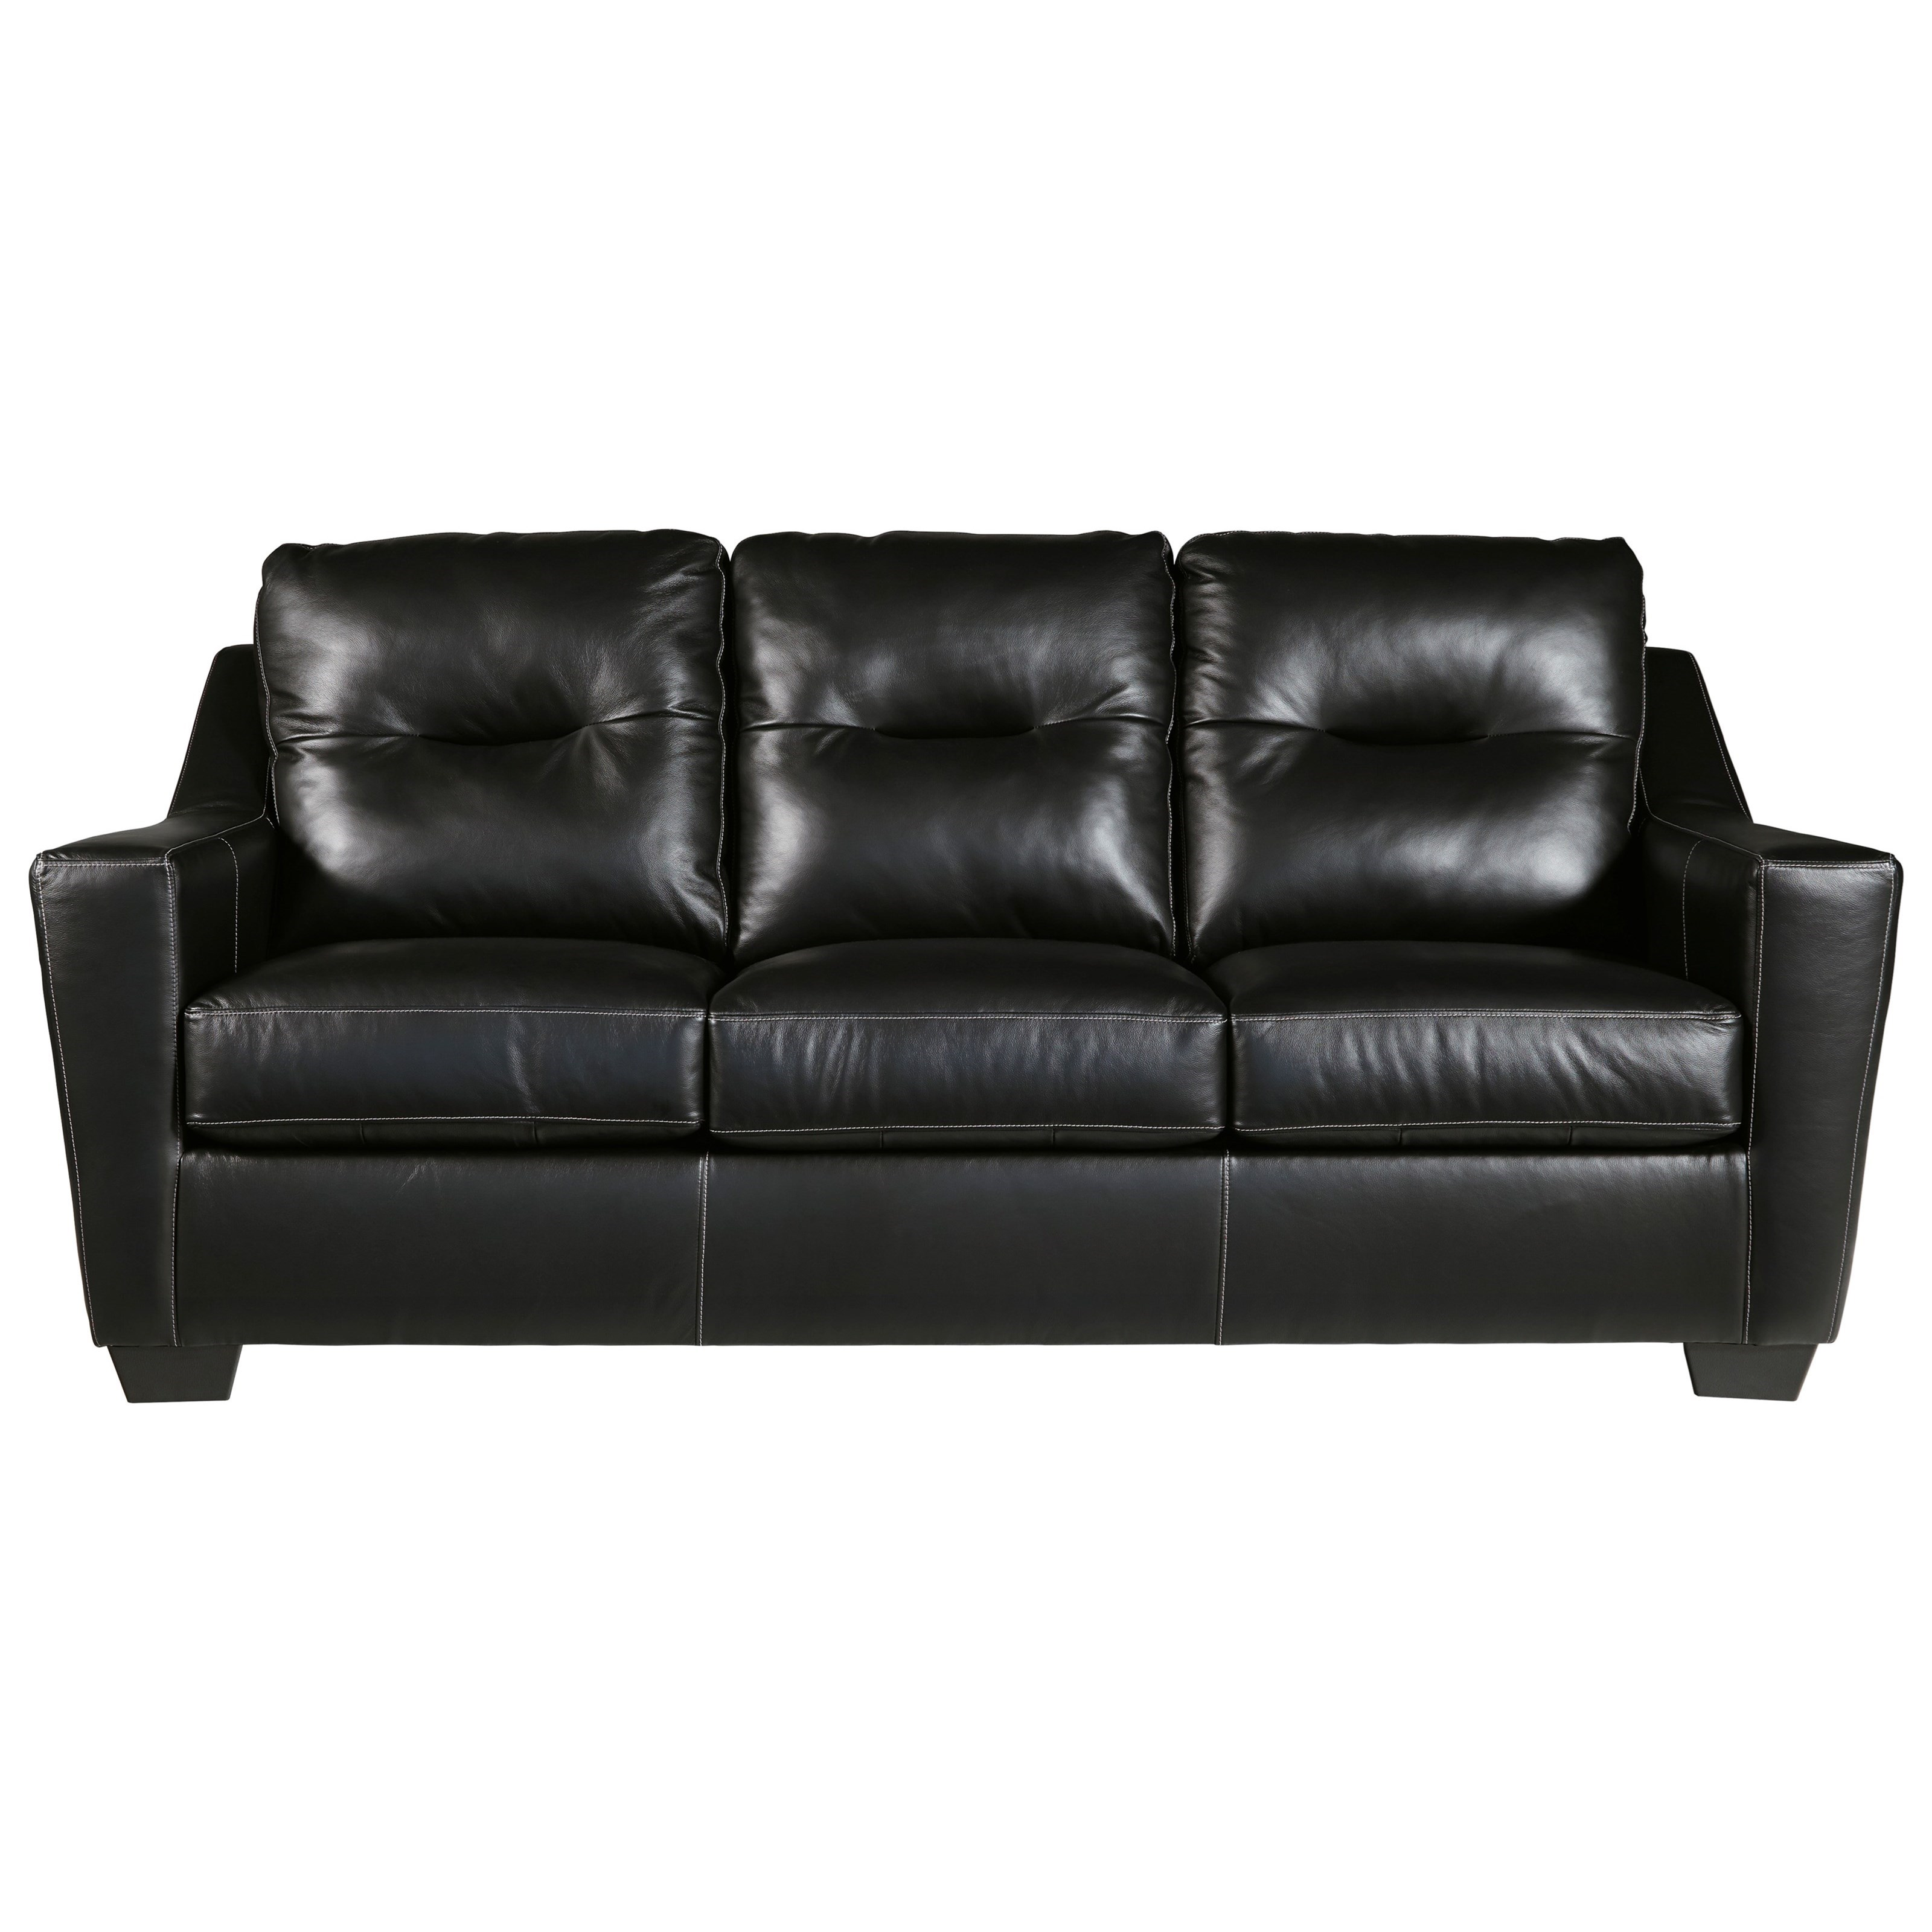 Signature Design by Ashley Kensbridge Sofa - Item Number: 6390638